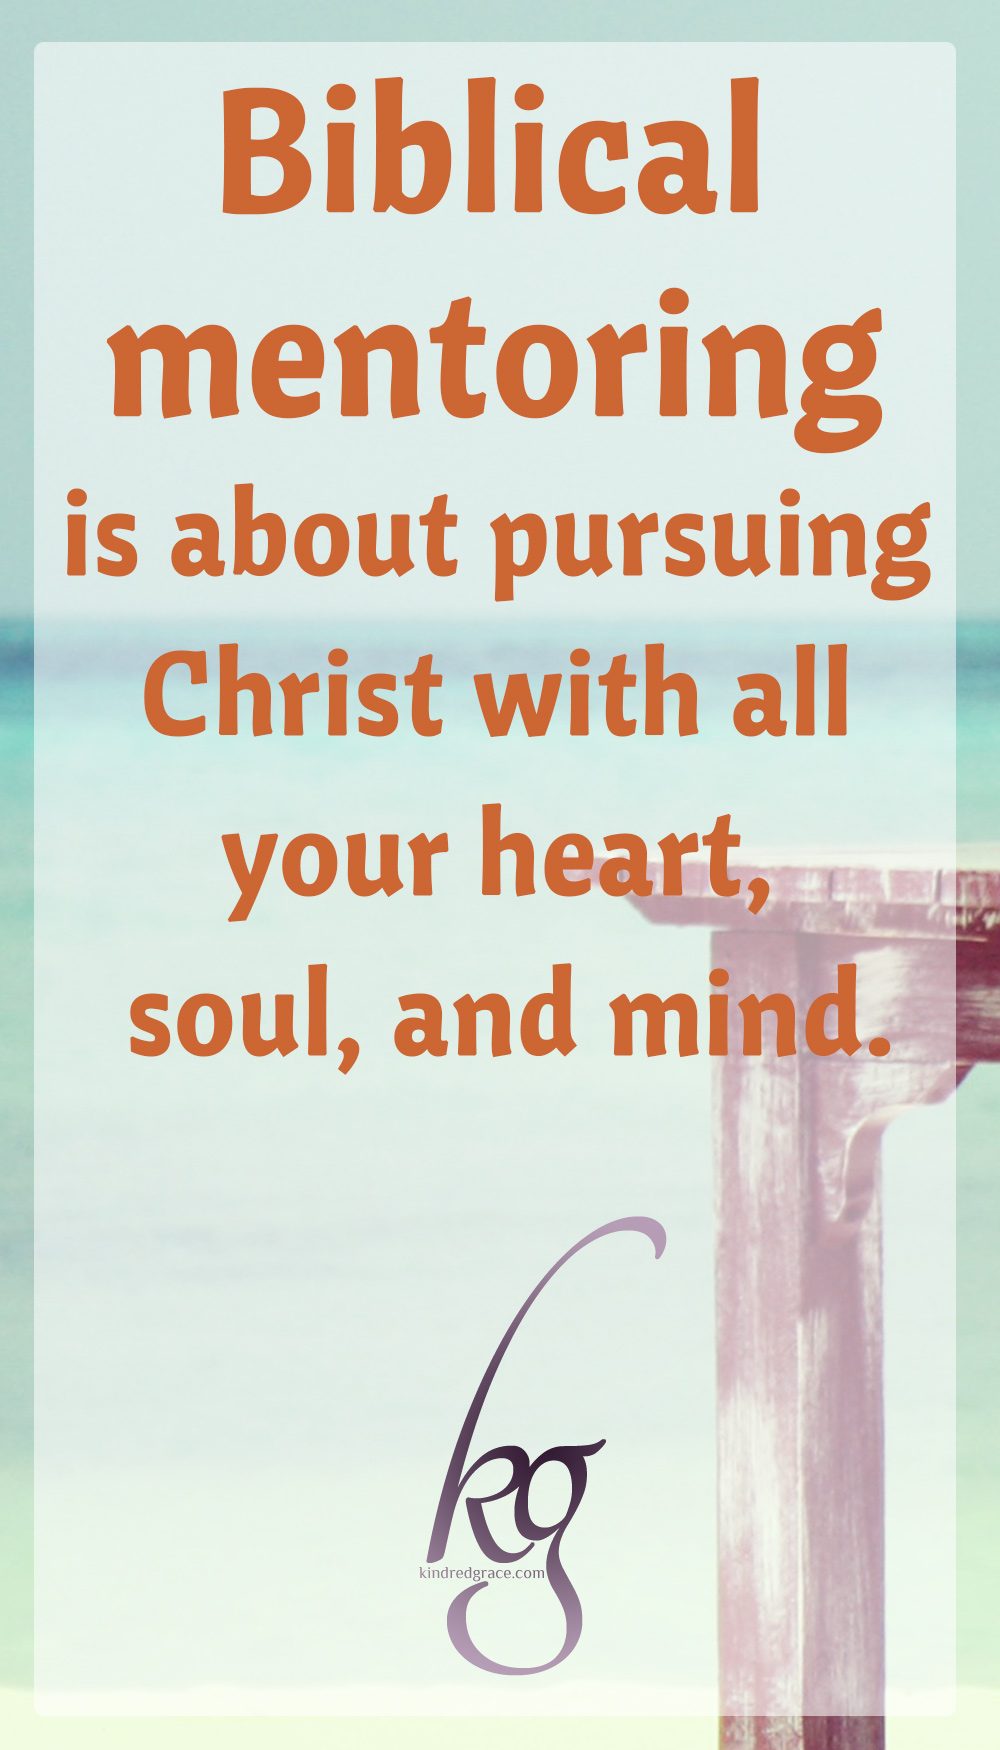 Biblical mentoring is about first pursuing Christ with all your heart, soul, and mind. Secondly, it's about reaching out to your neighbor -- that next generation girl that crosses your path -- and seeking to build a relationship rooted in Christ's love as you would with any sister in Christ. via @KindredGrace